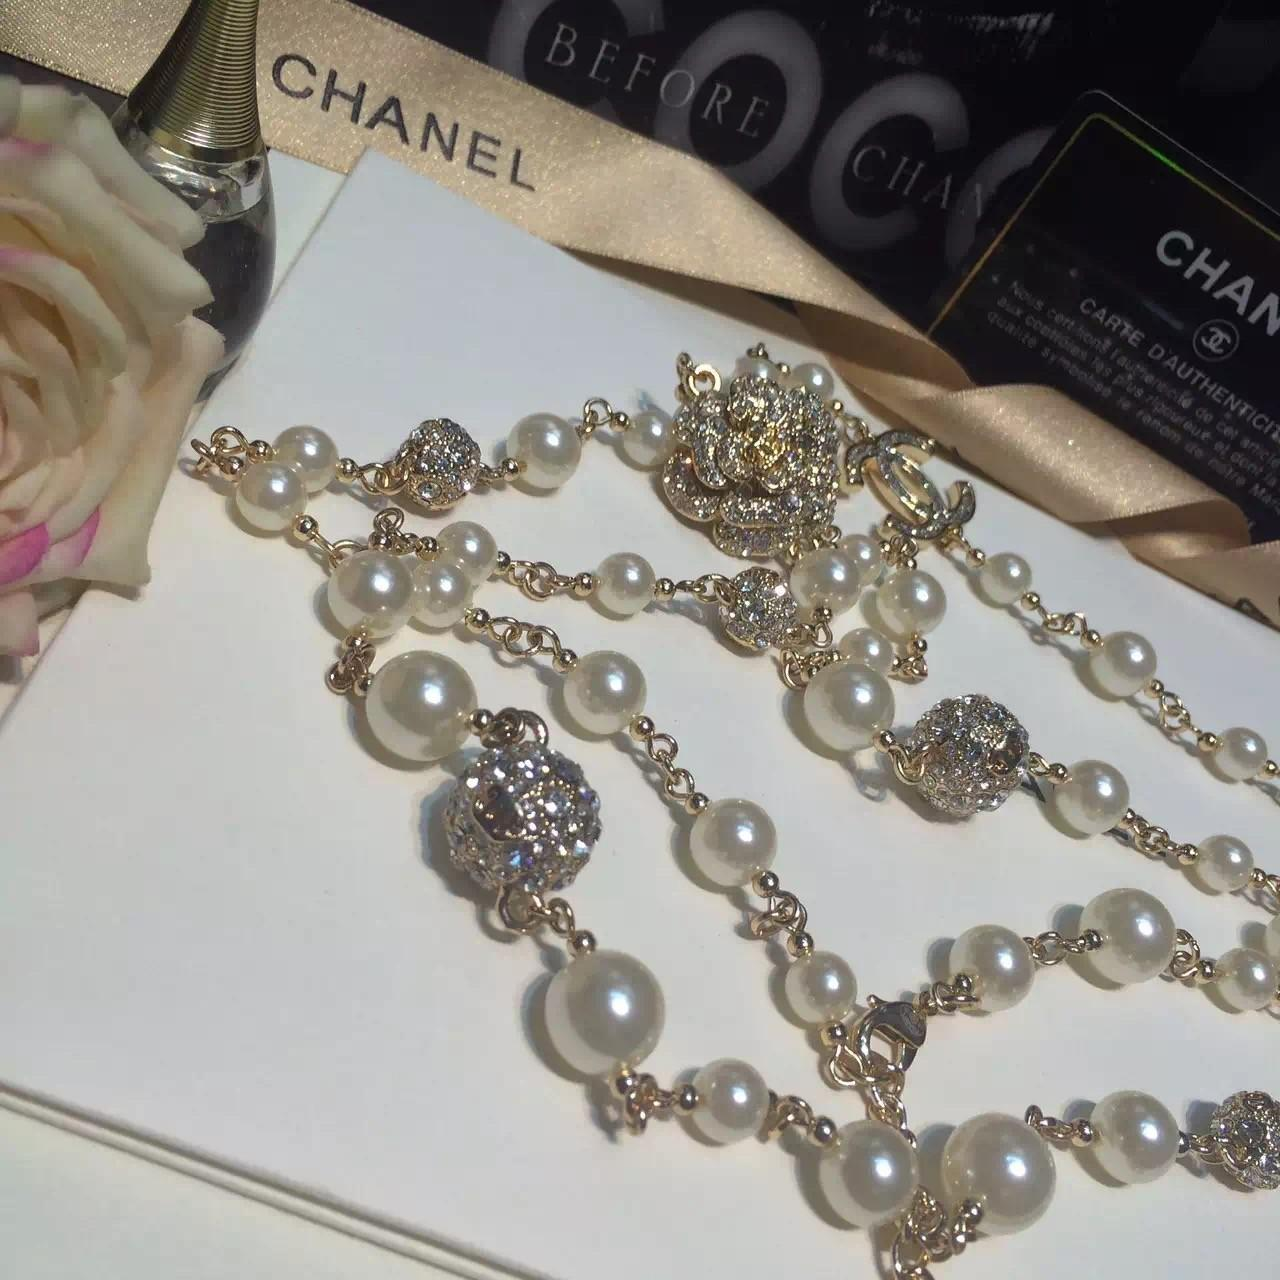 Copy Chanel Long Necklace Replica Jewelry